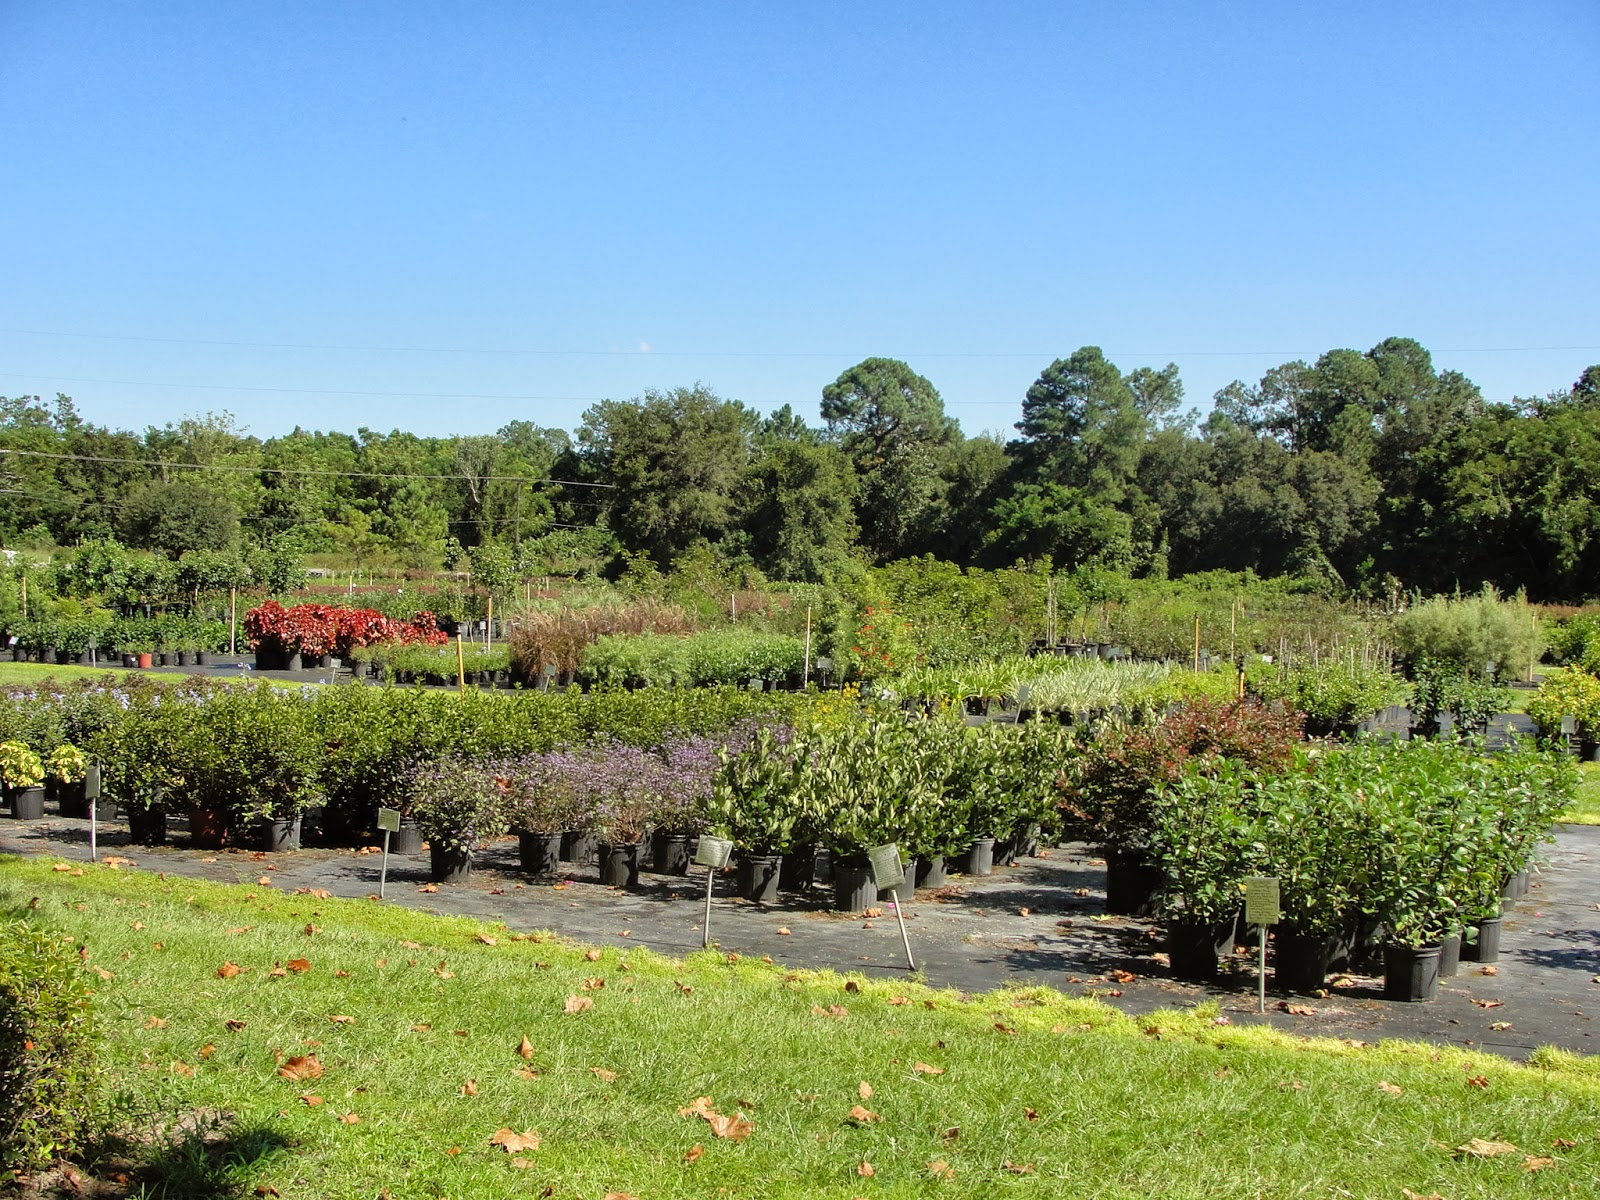 The Plants Are In Excellent Shape And The Prices Are Lower Than The Local Box Stores And Generally Larger Too